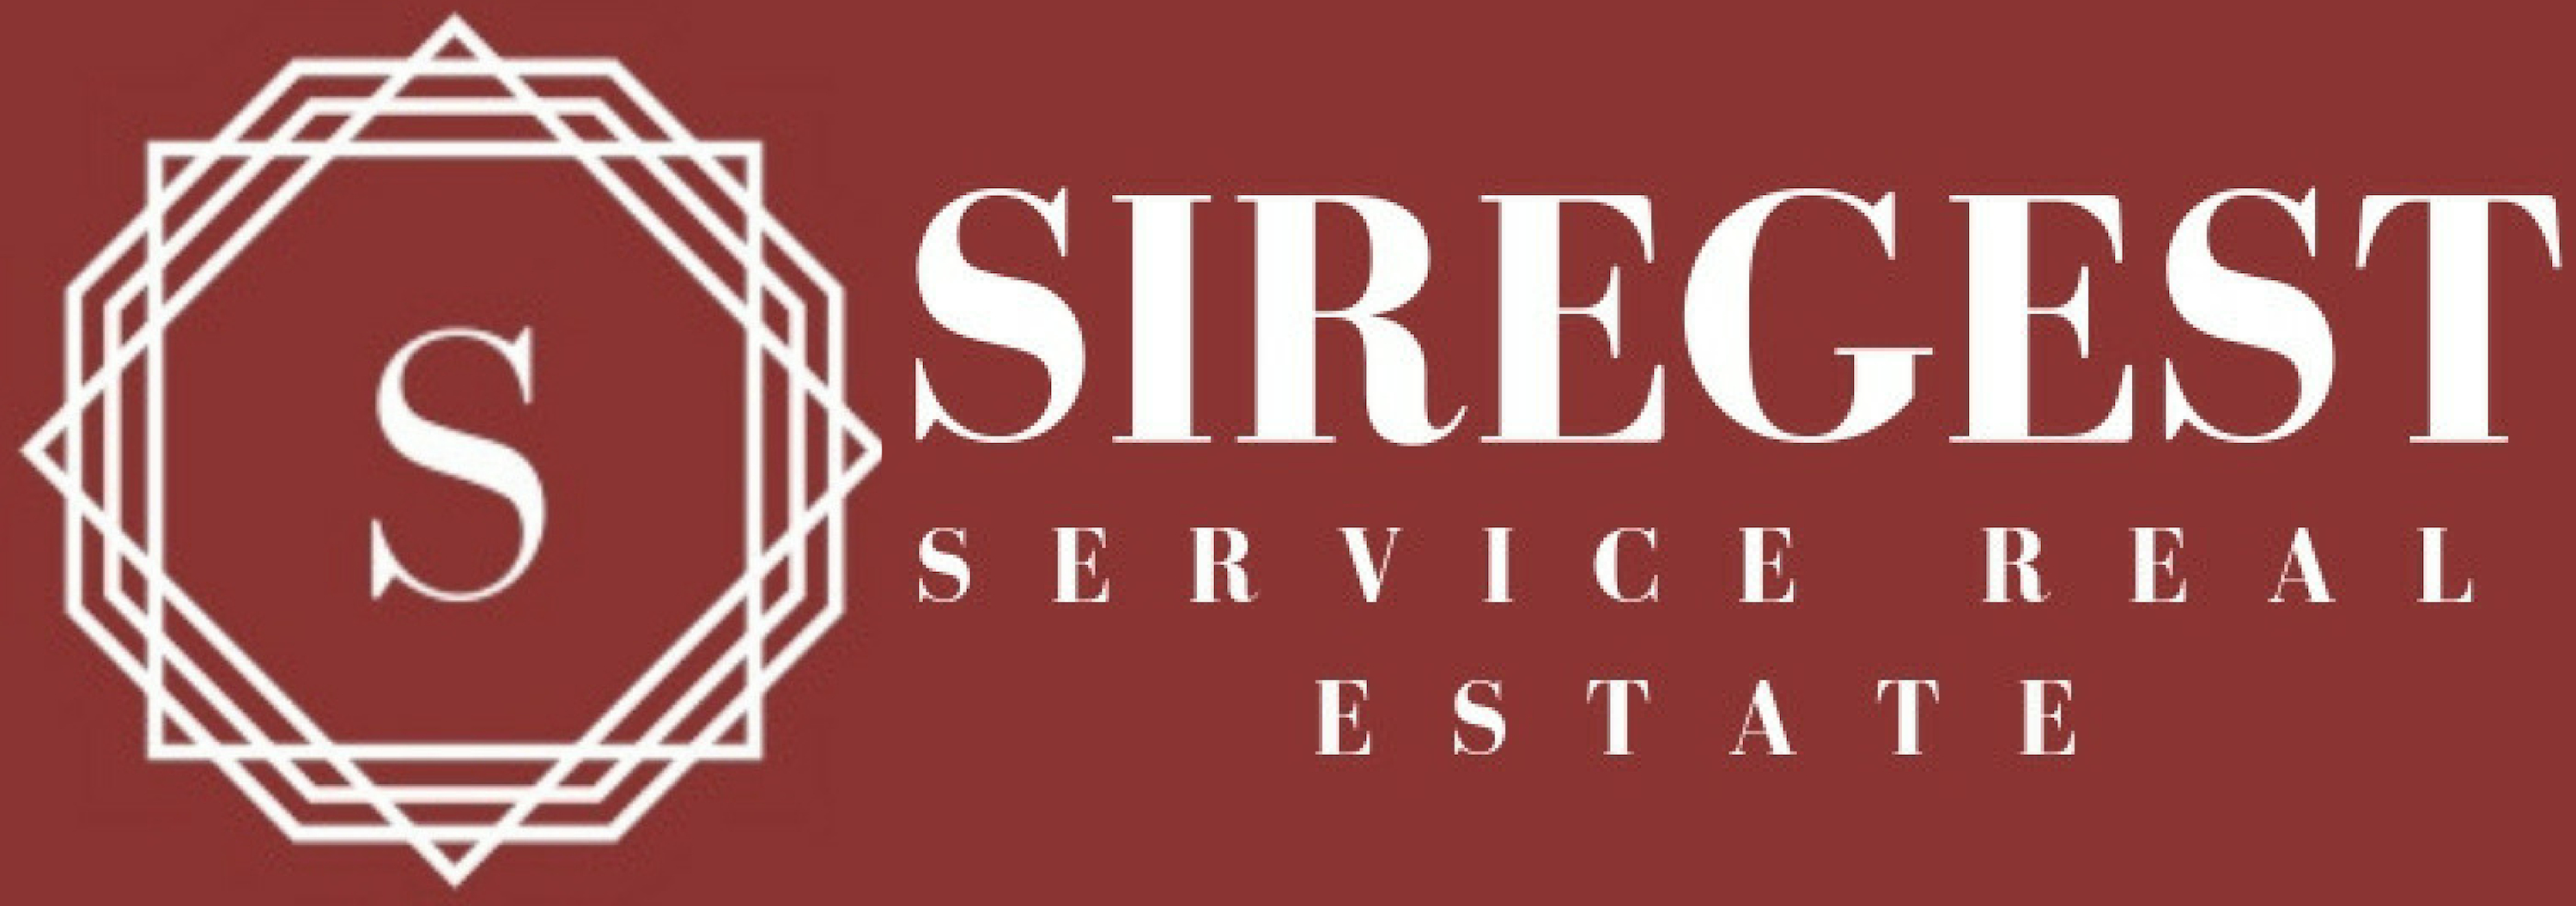 SIREGEST Service Real Estate